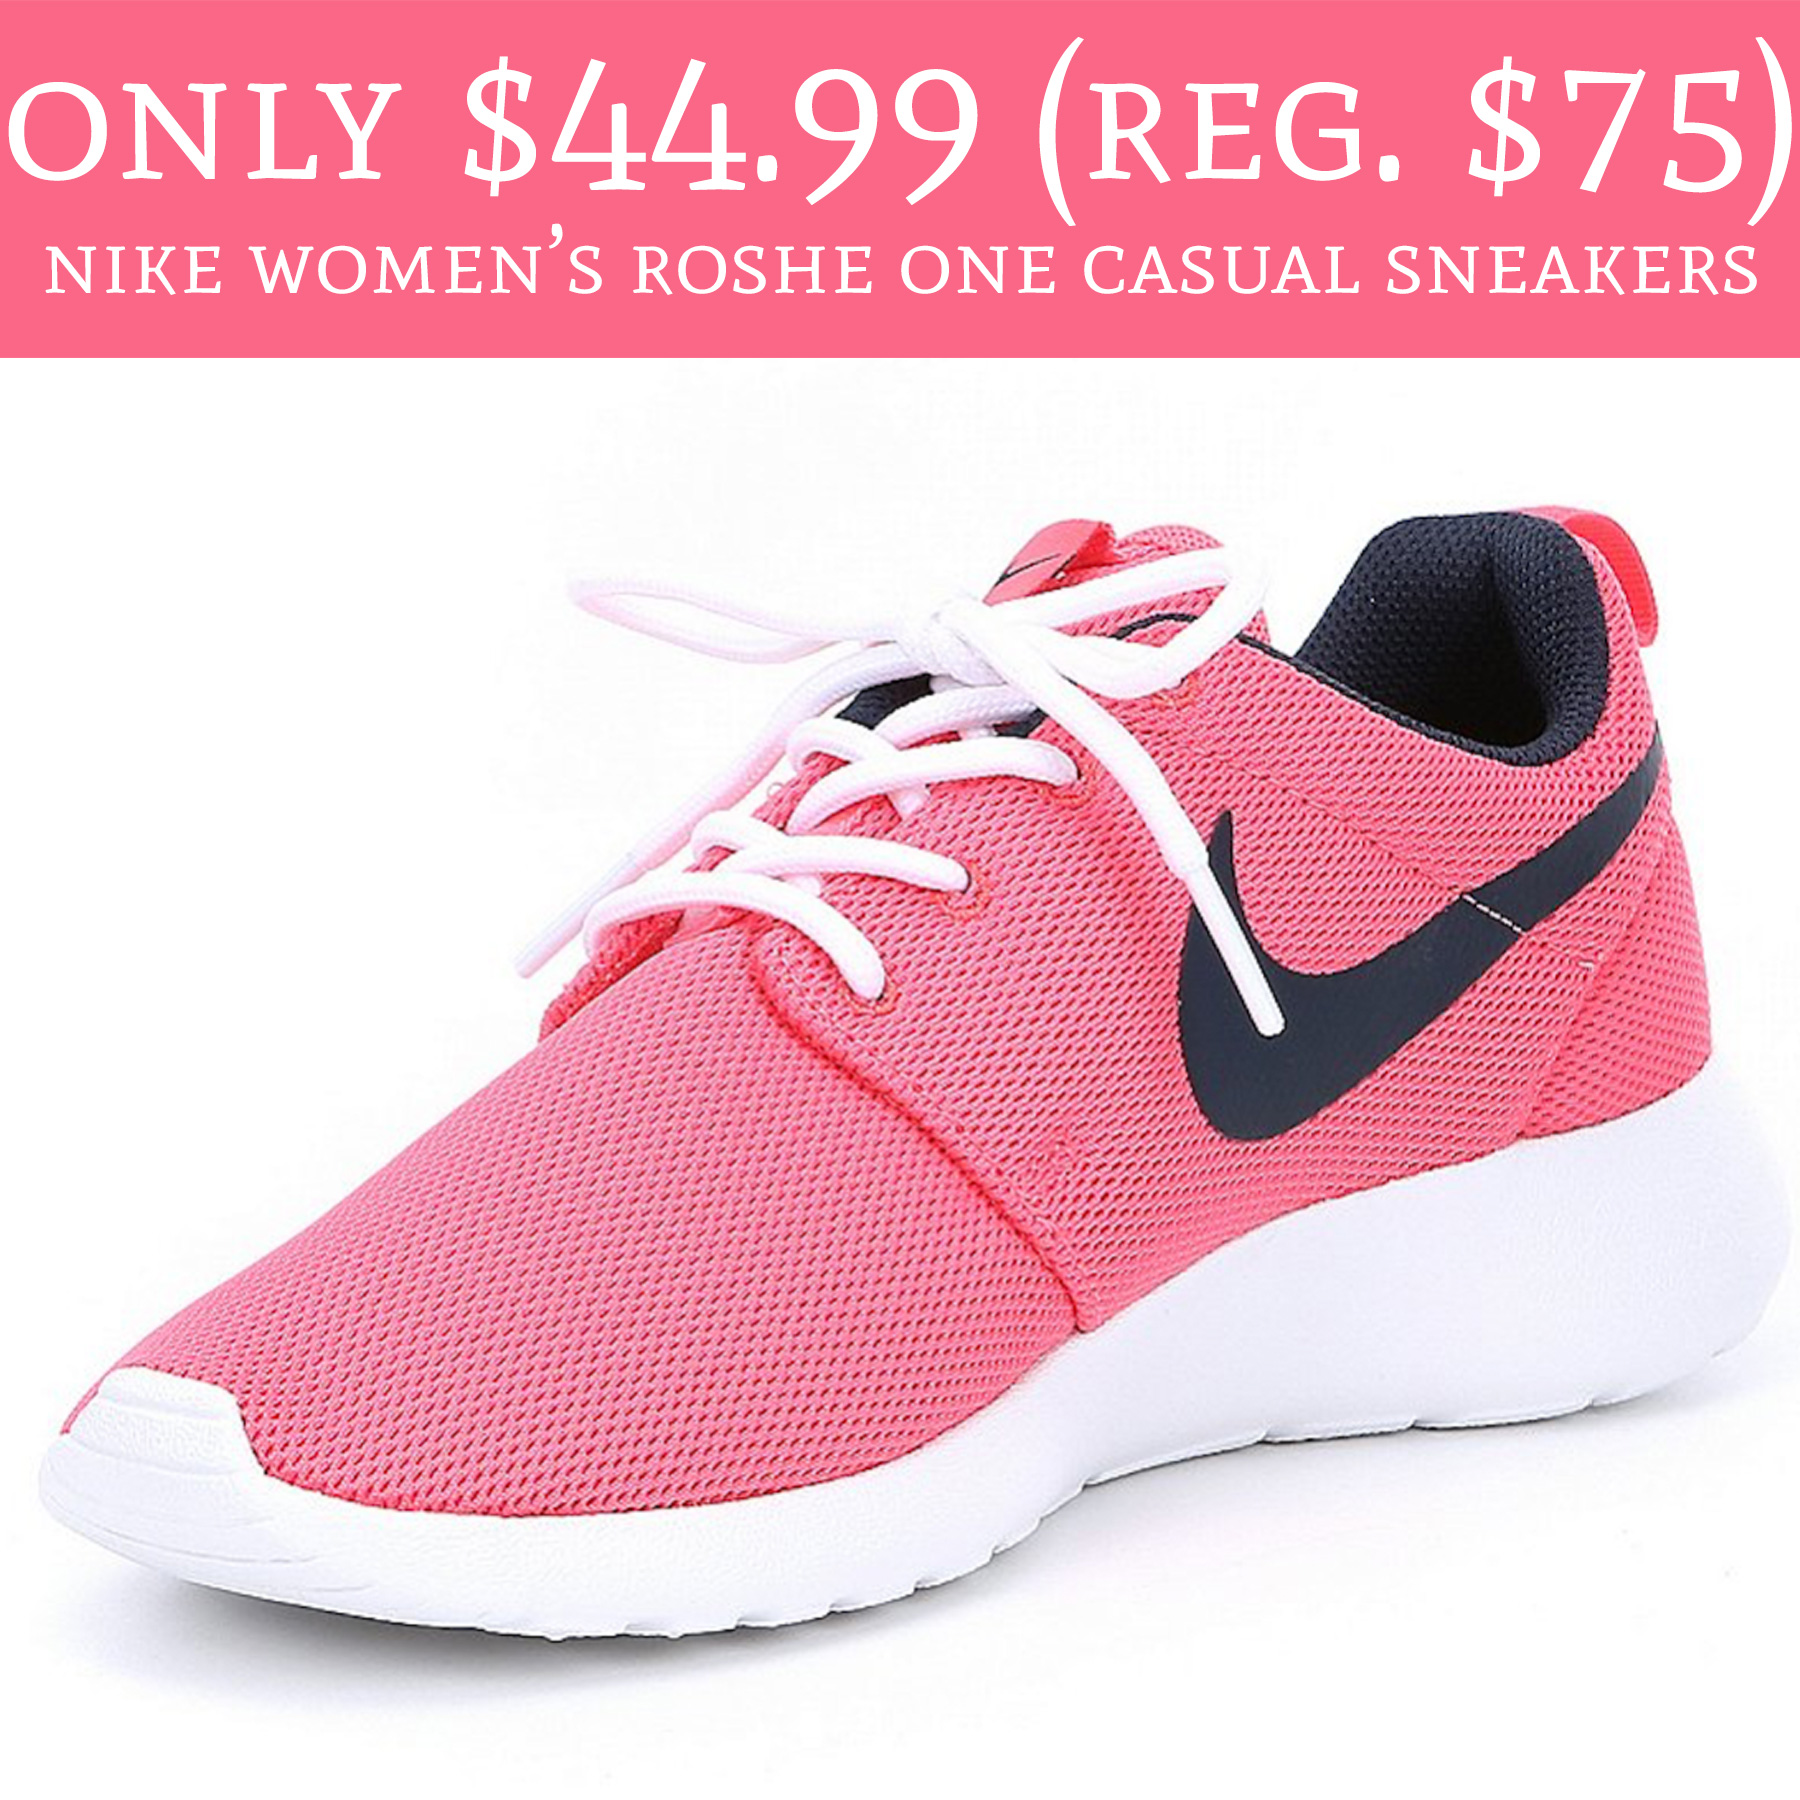 406232a433a6 Only  44.99 (Regular  75) Nike Women s Roshe One Casual Sneakers ...